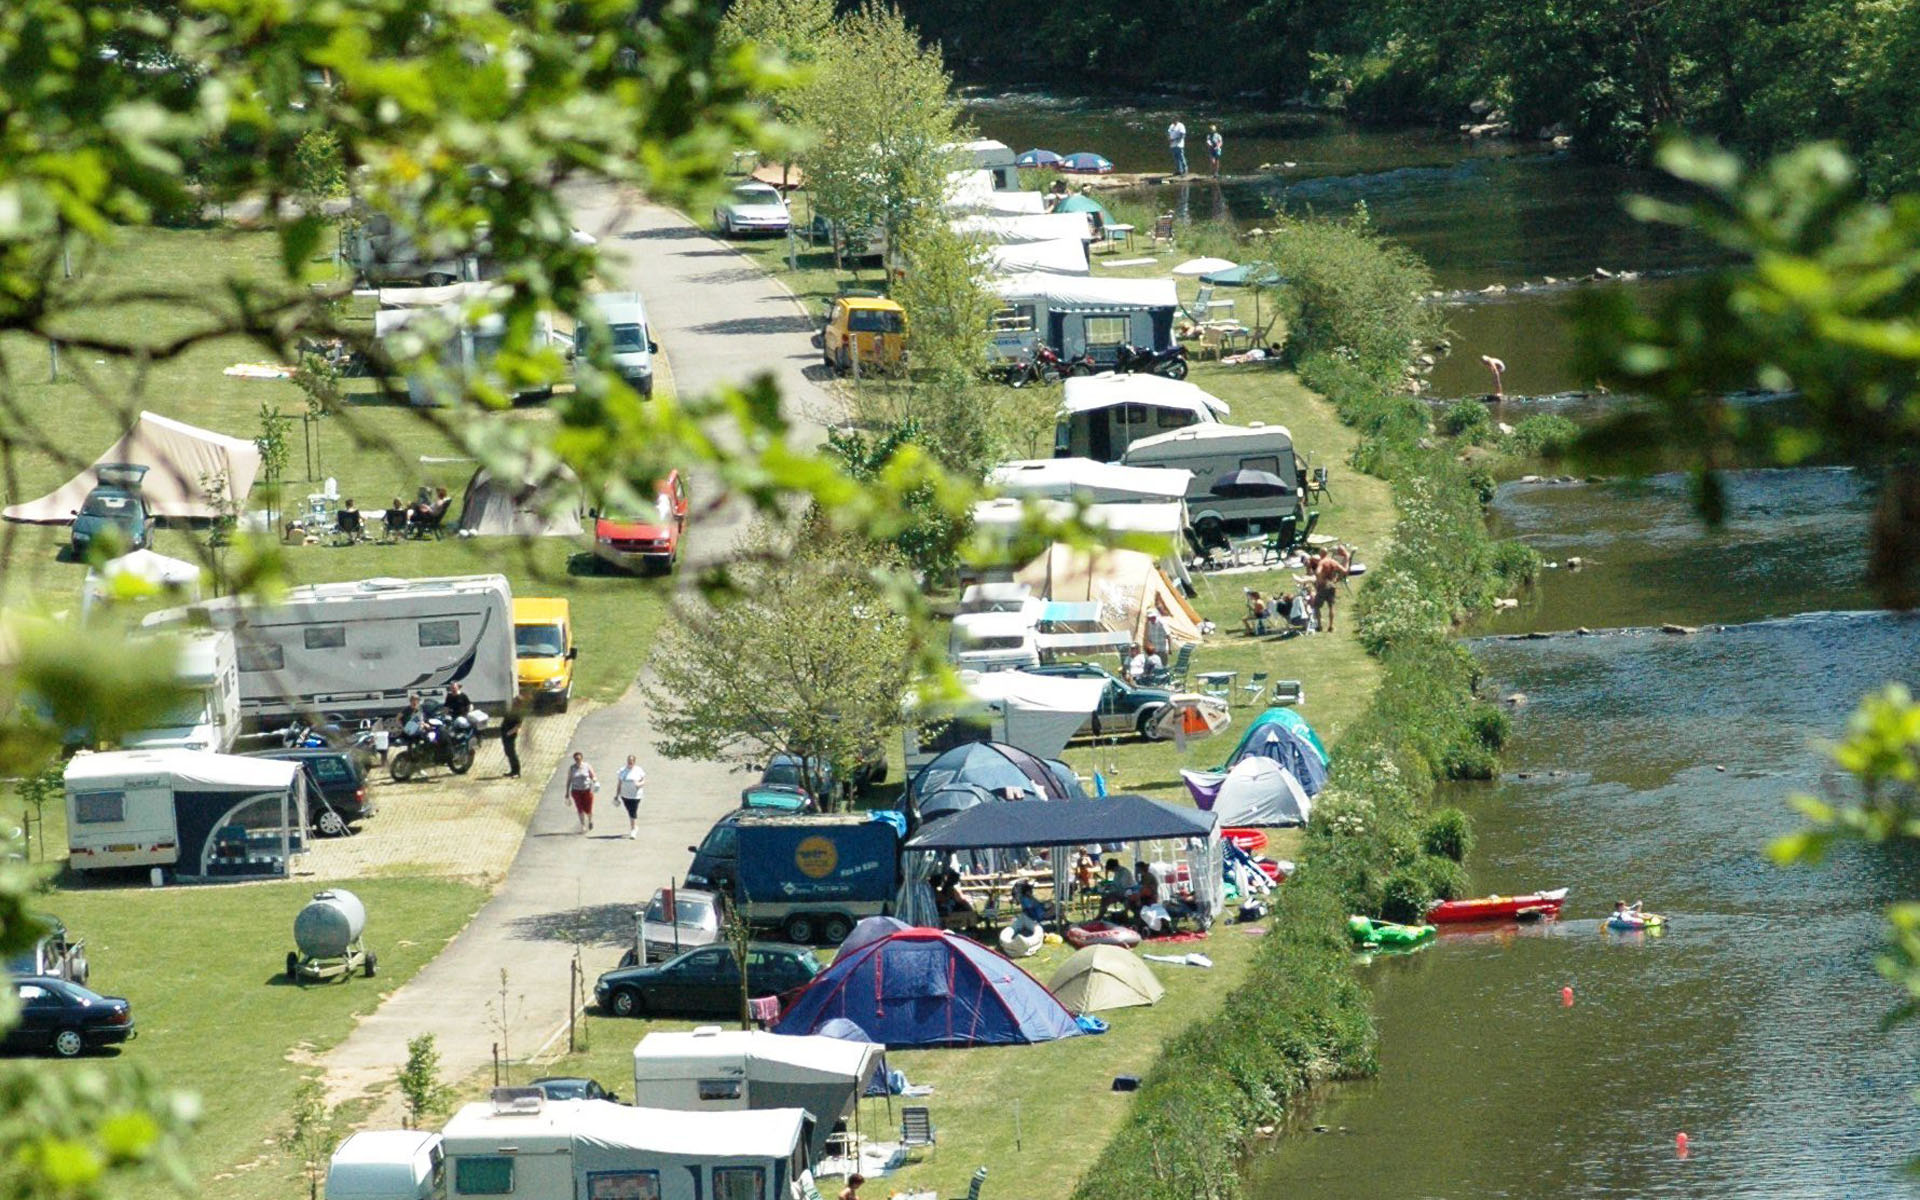 Campings Luxemburg stad